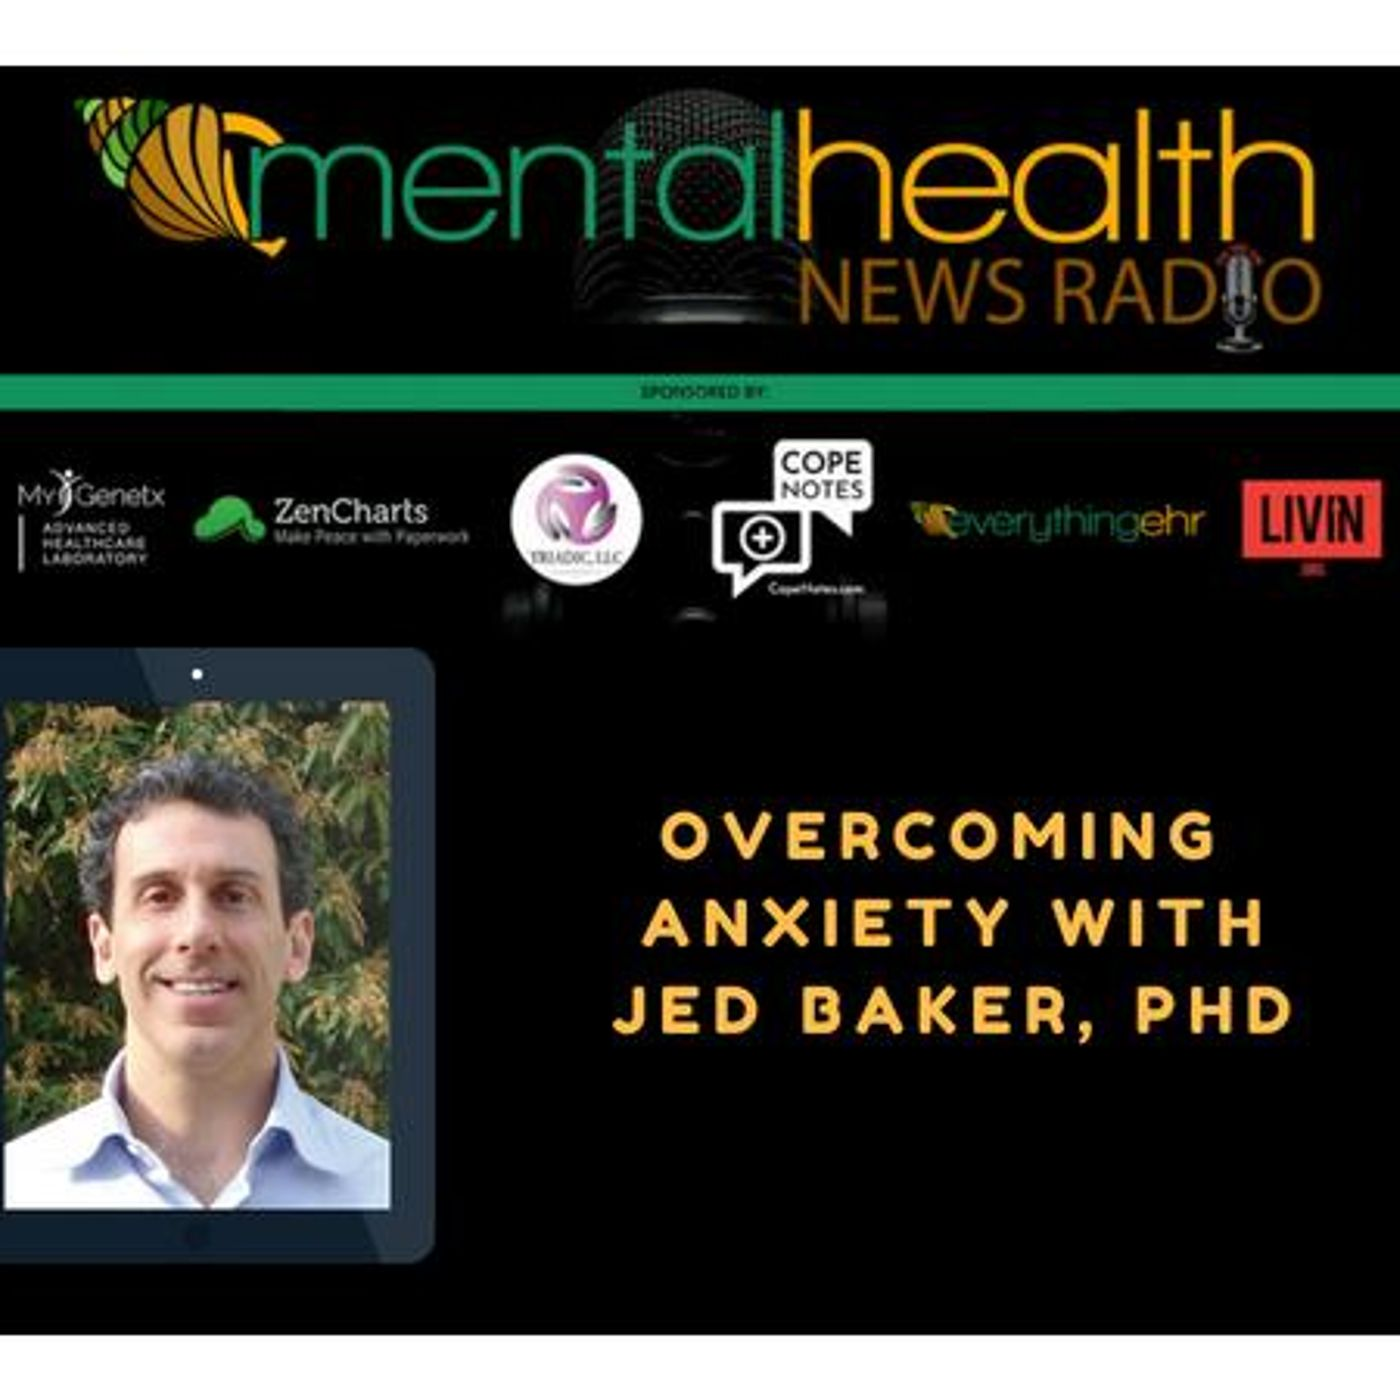 Mental Health News Radio - Overcoming Anxiety with Dr. Jed Baker